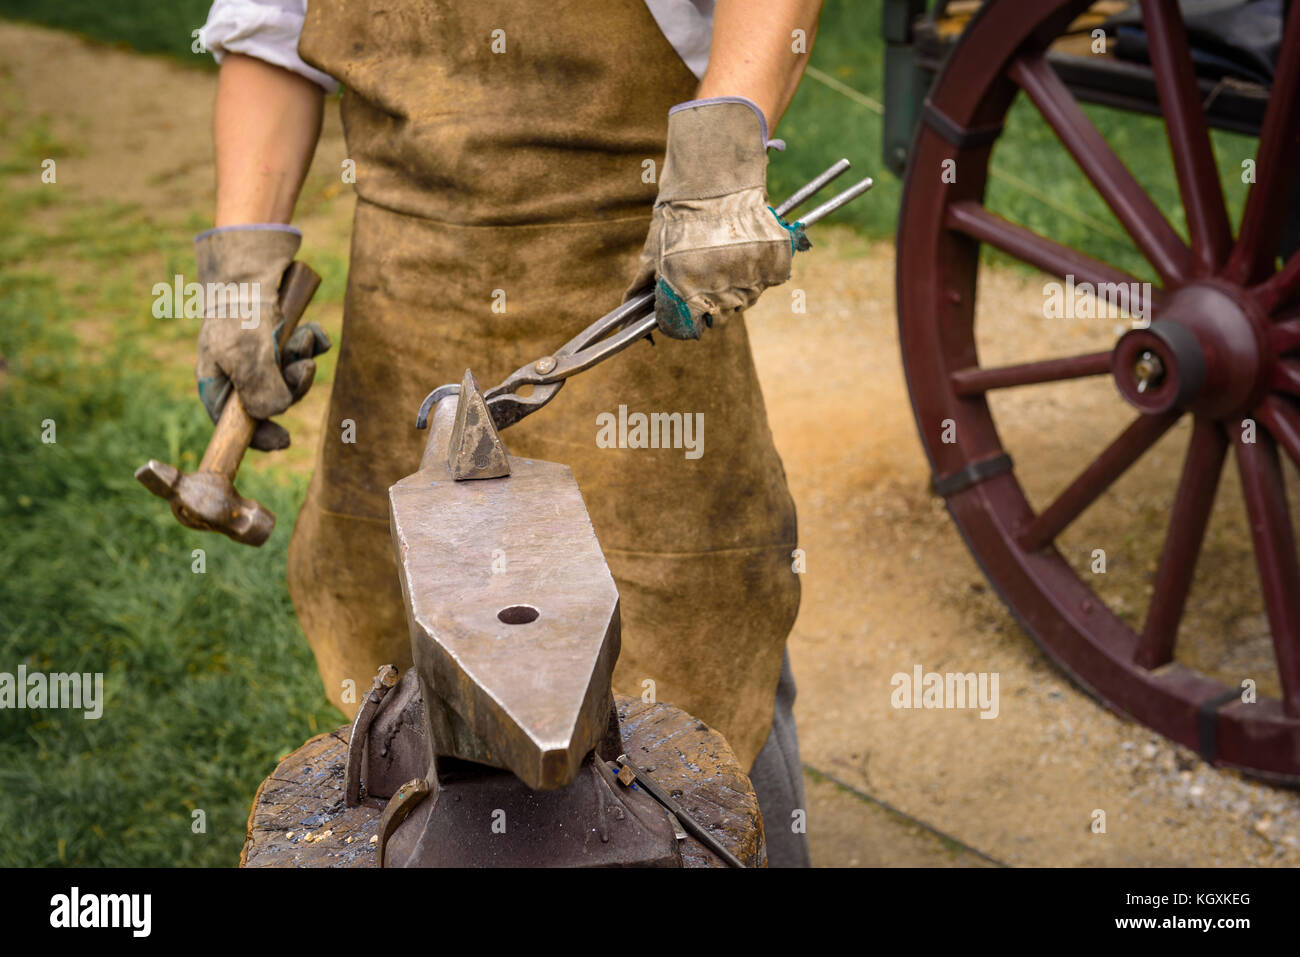 Blacksmith working on an iron object with a hammer during a workshop. - Stock Image